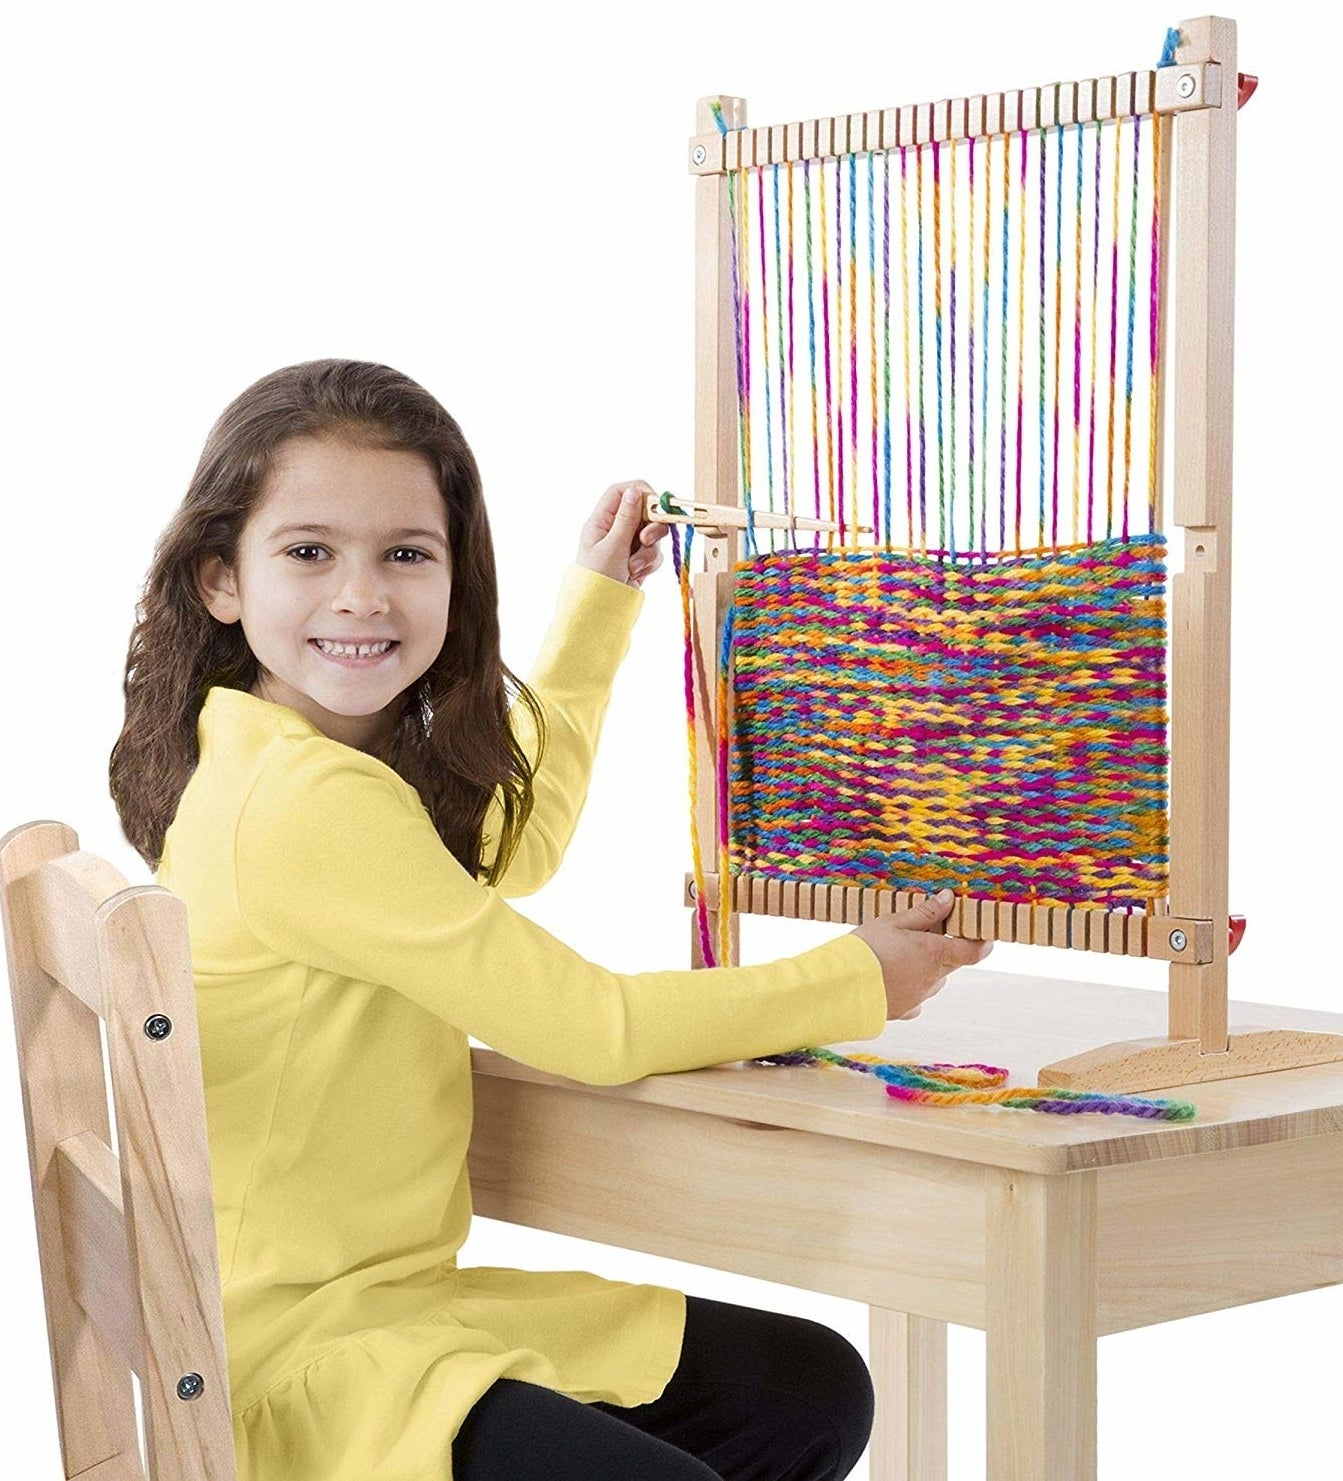 model using upright loom